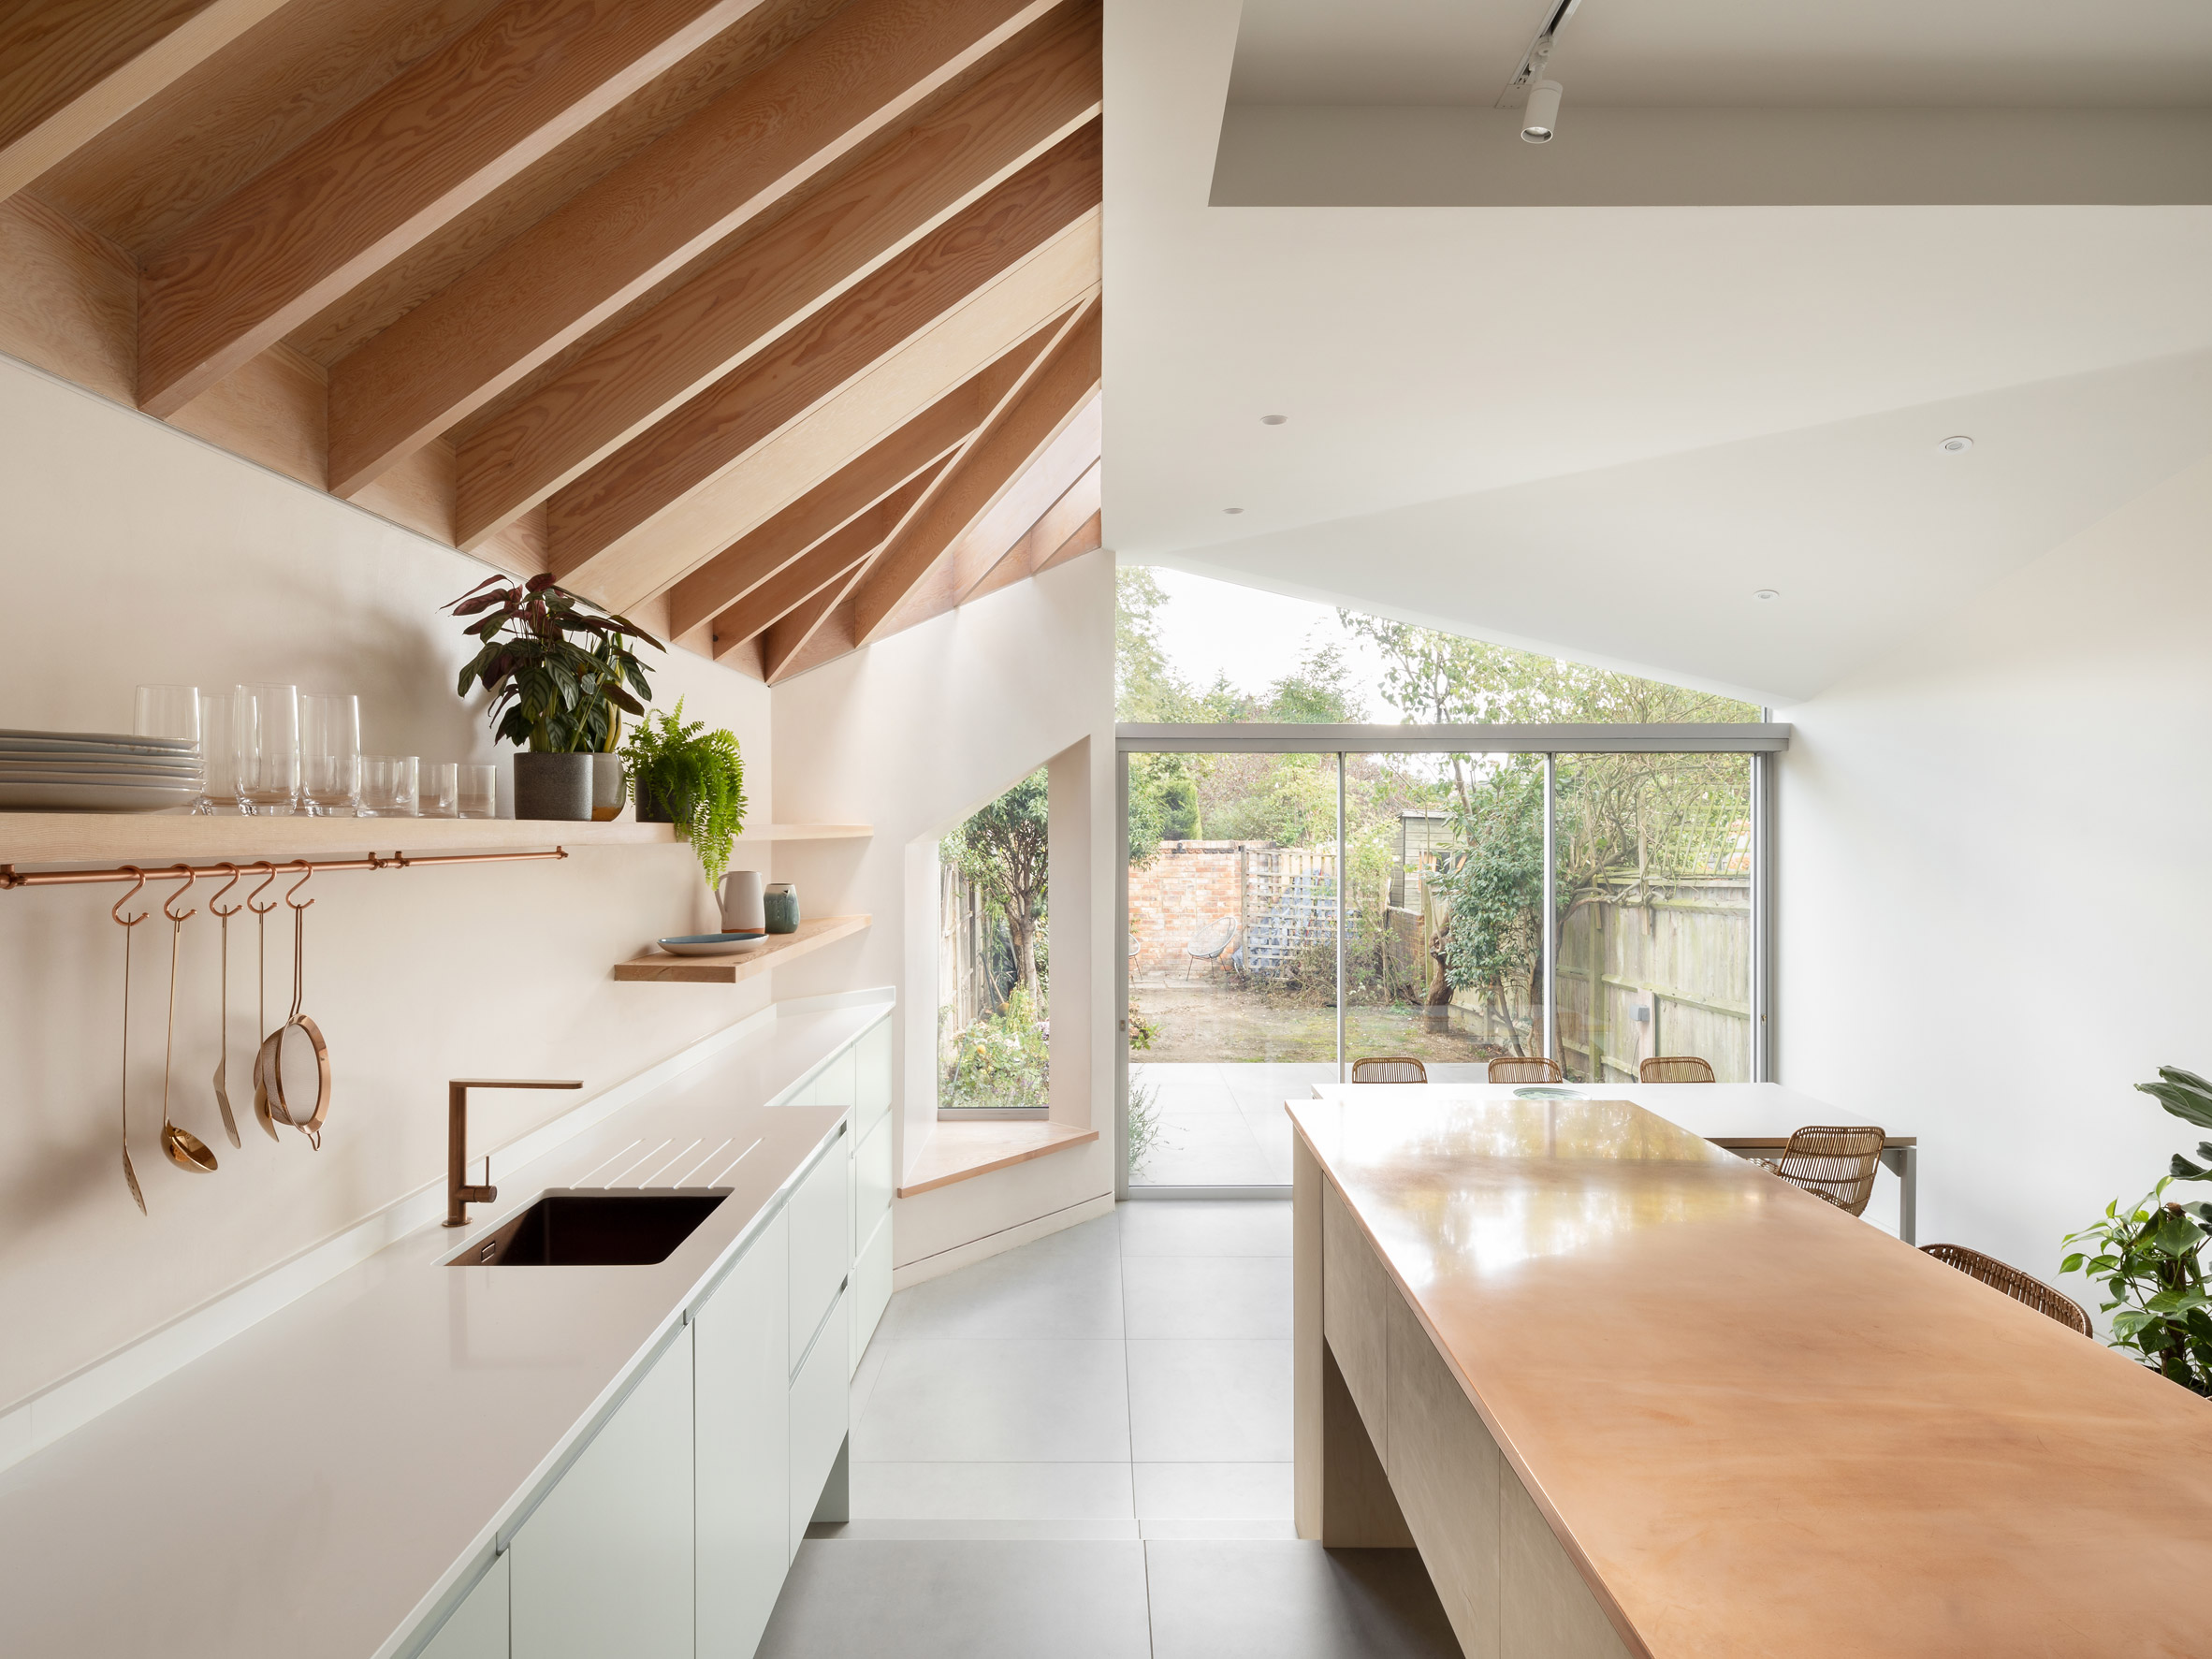 The kitchen of an angular residential extension in London